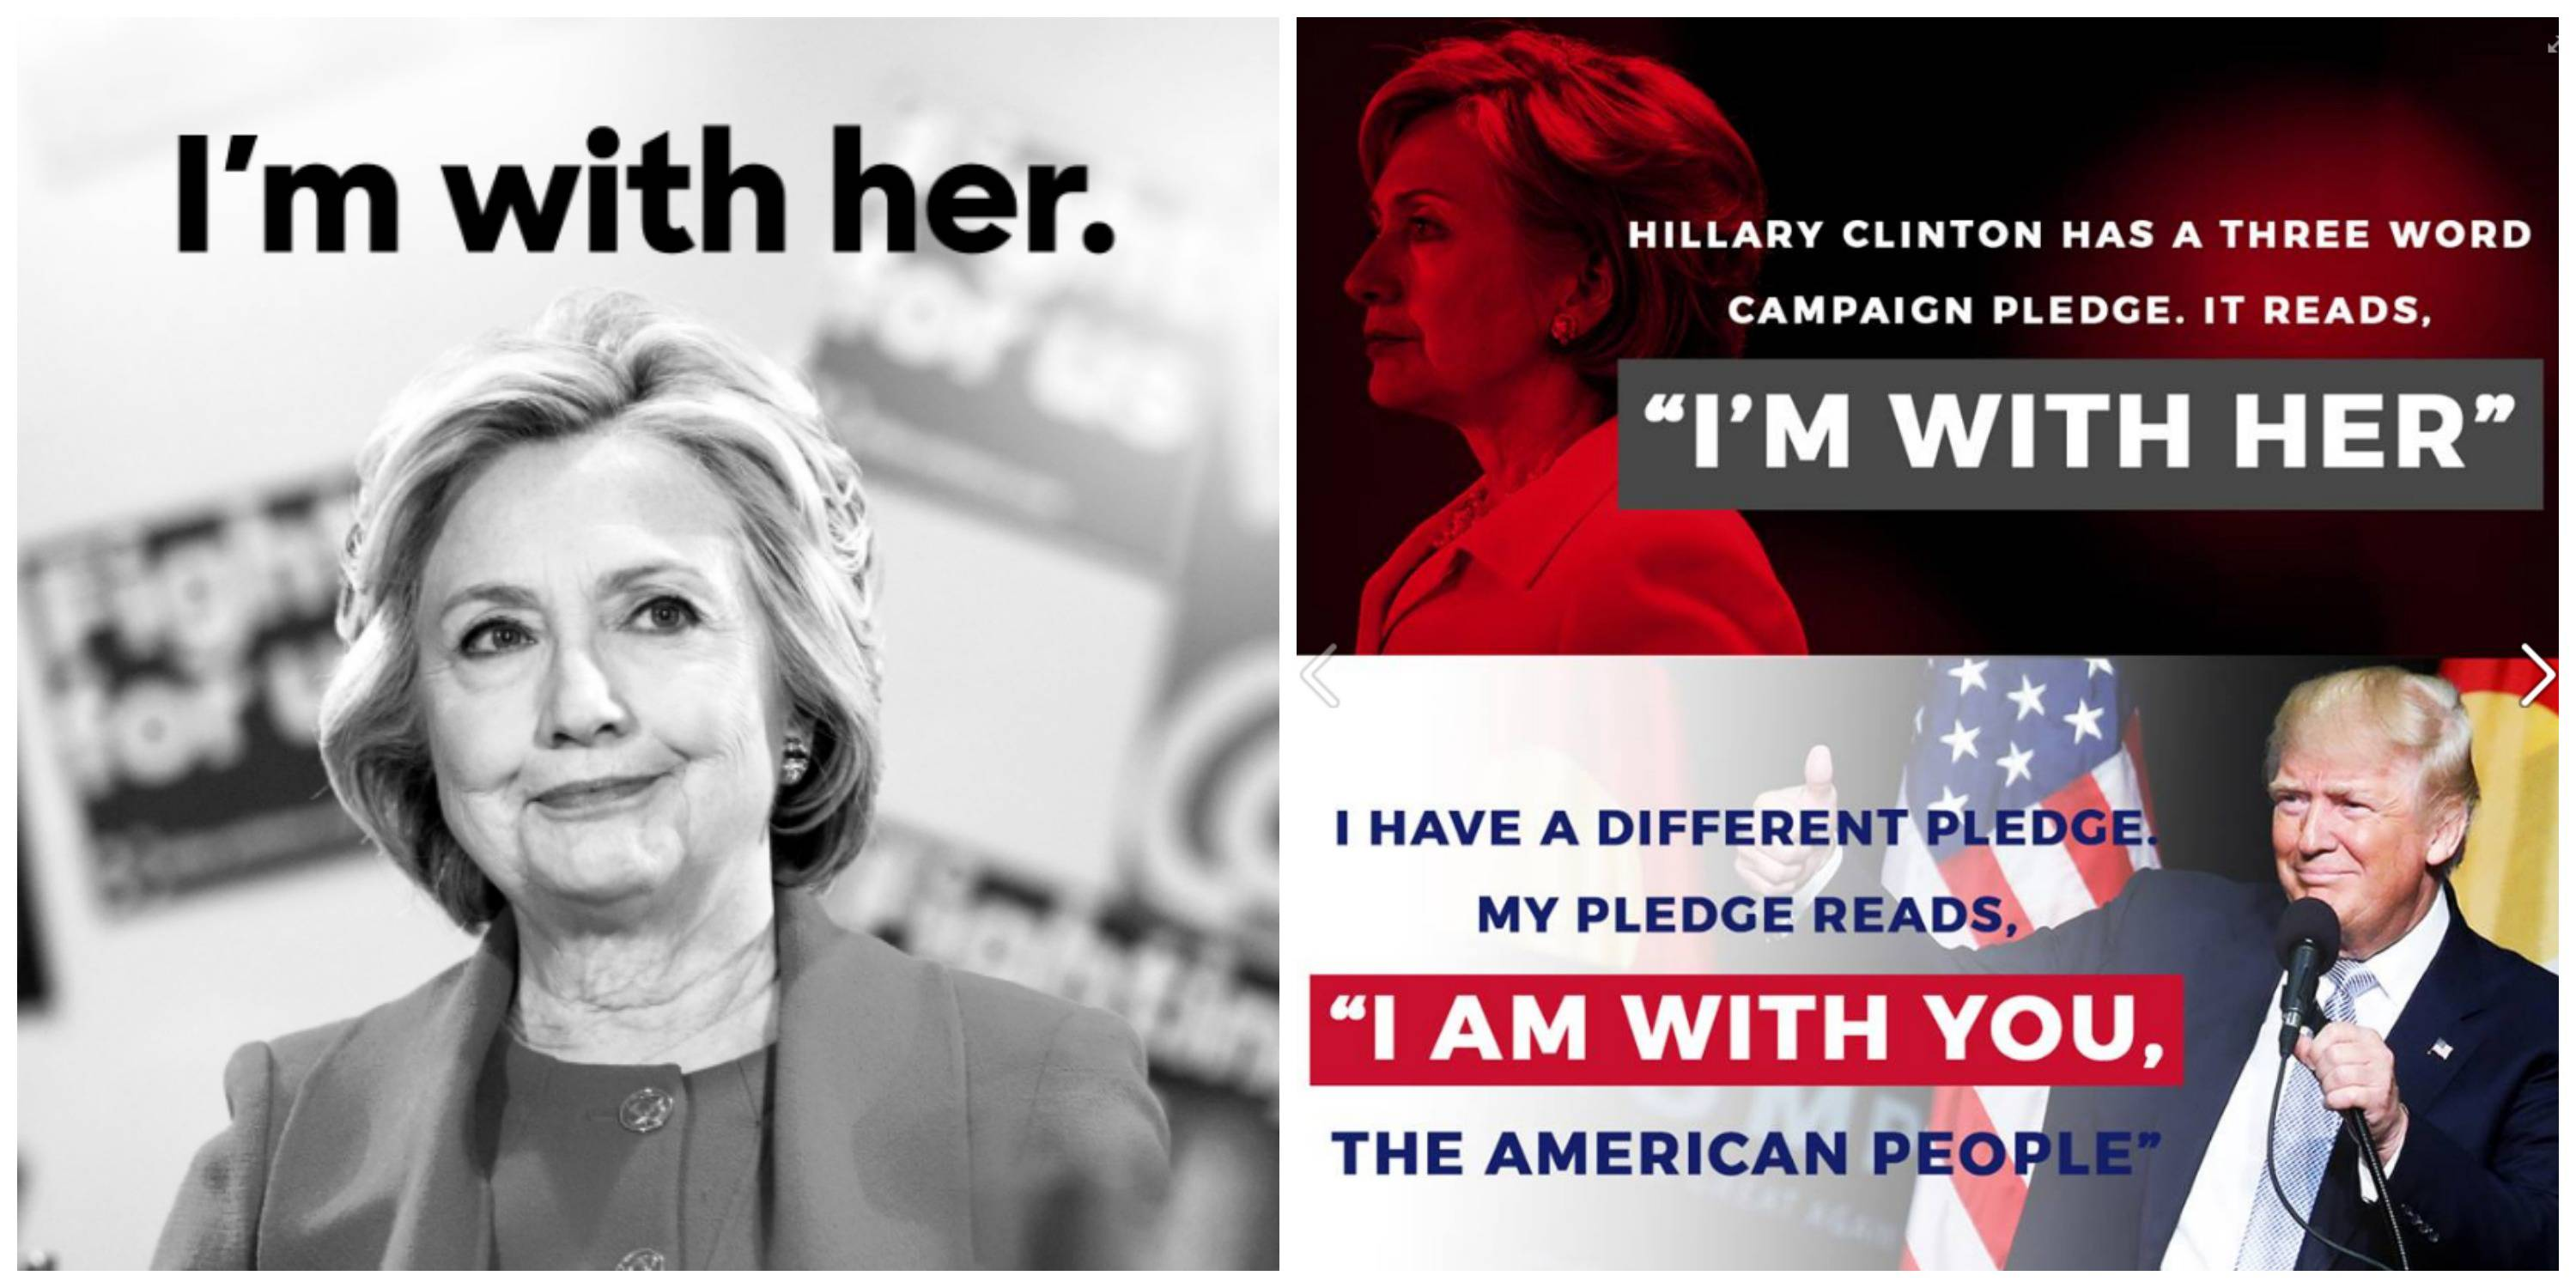 Images shared by the Clinton campaign (left) and the Trump campaign (right).